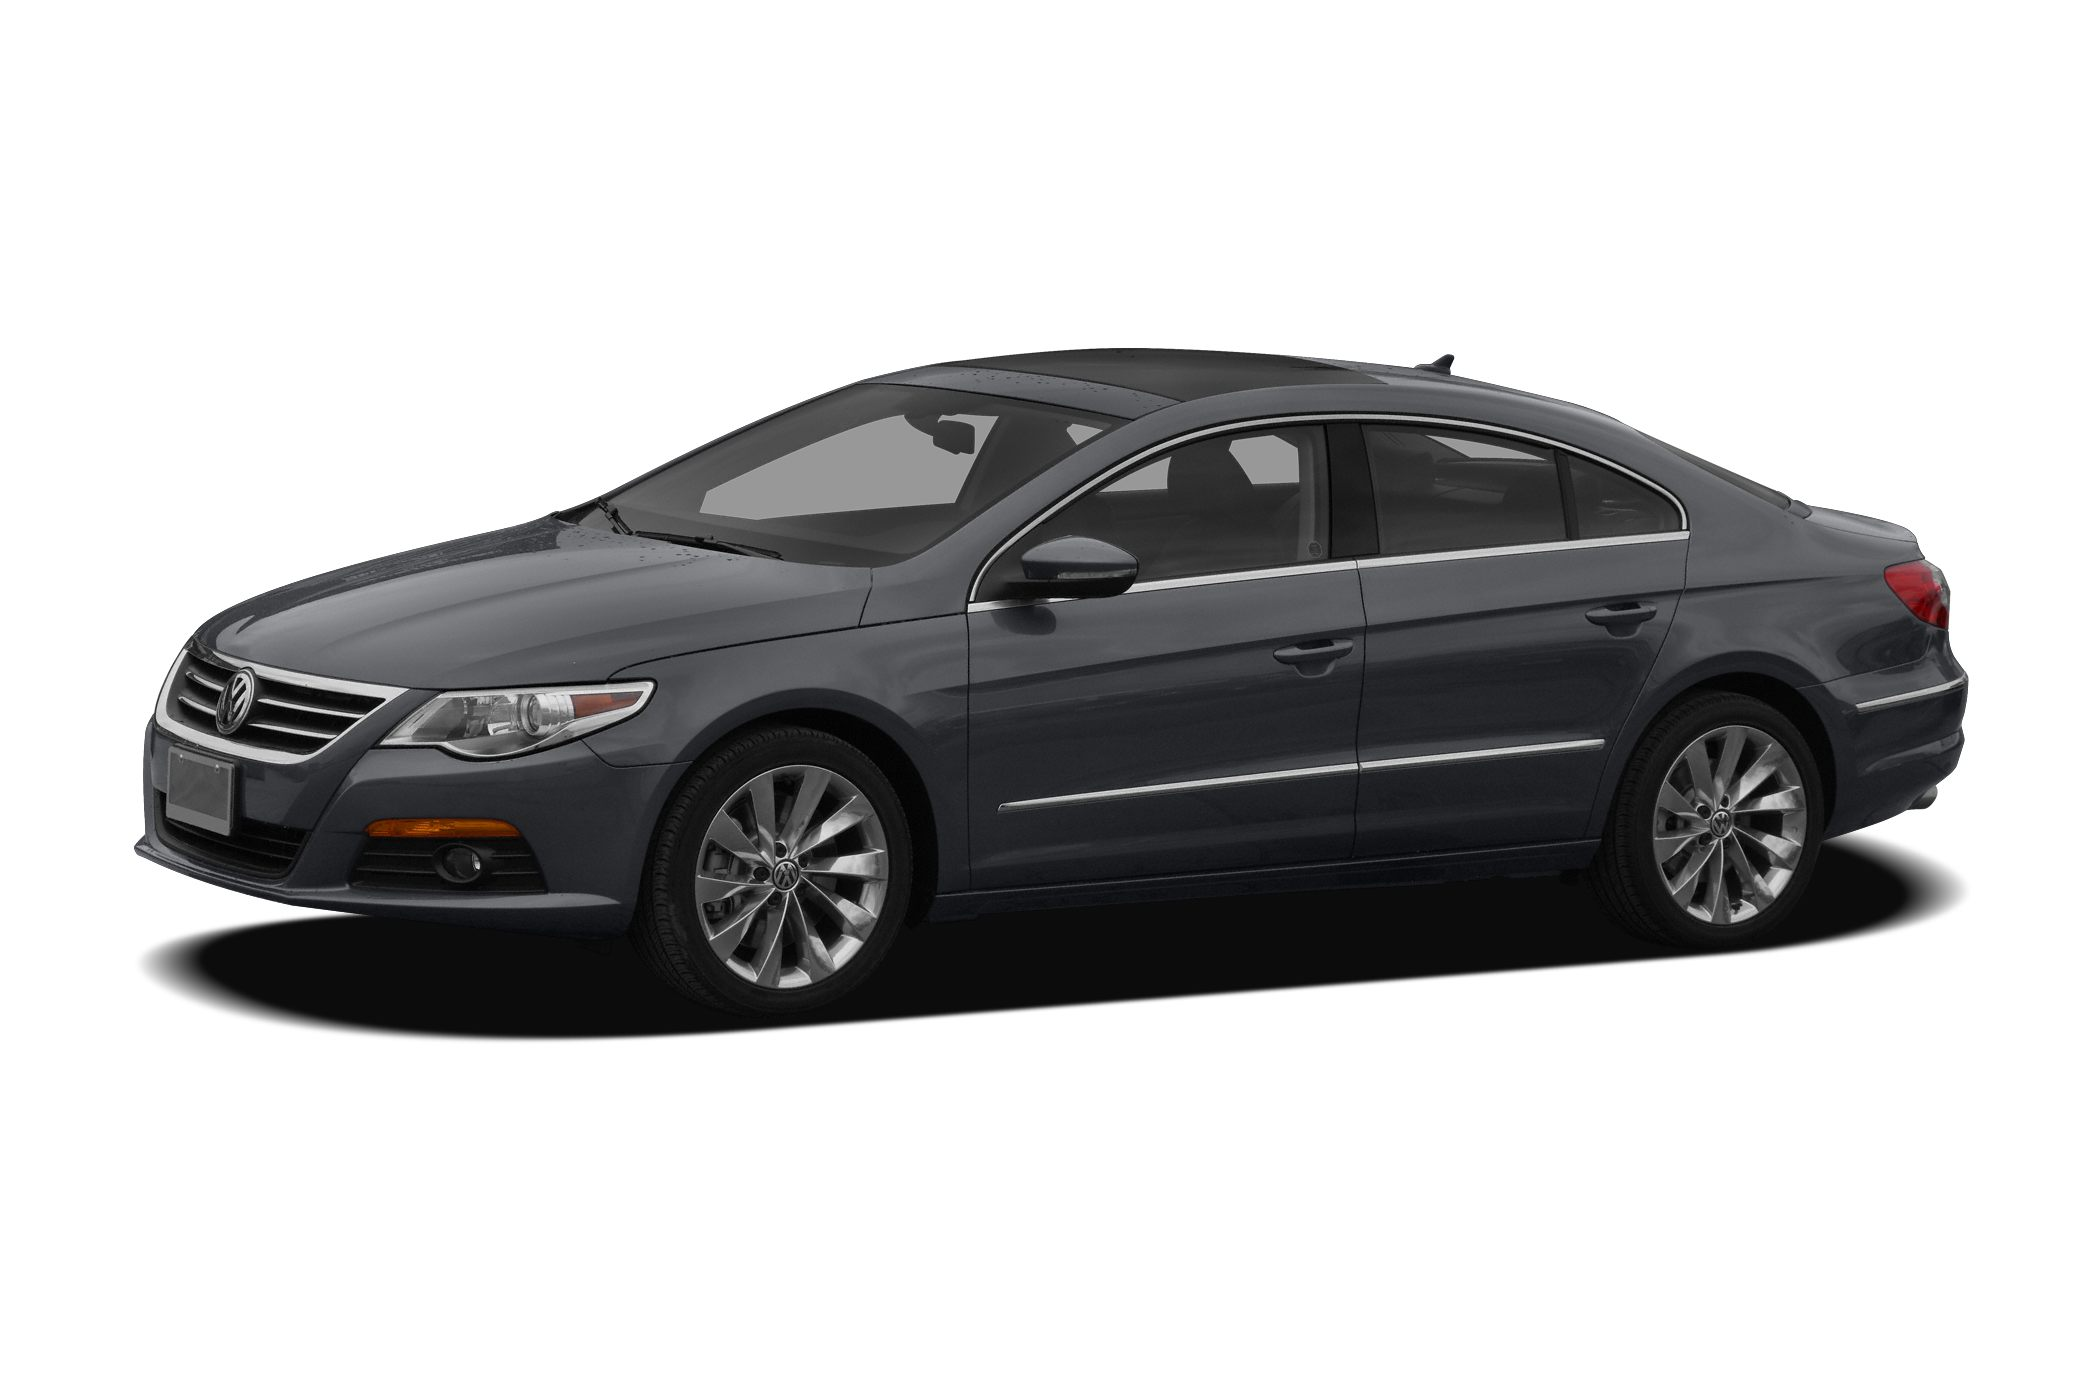 2009 Volkswagen CC Luxury All serviced by us -- LEATHER -- NAVAGATION --PANORAMIC SKYROOF -- Tur